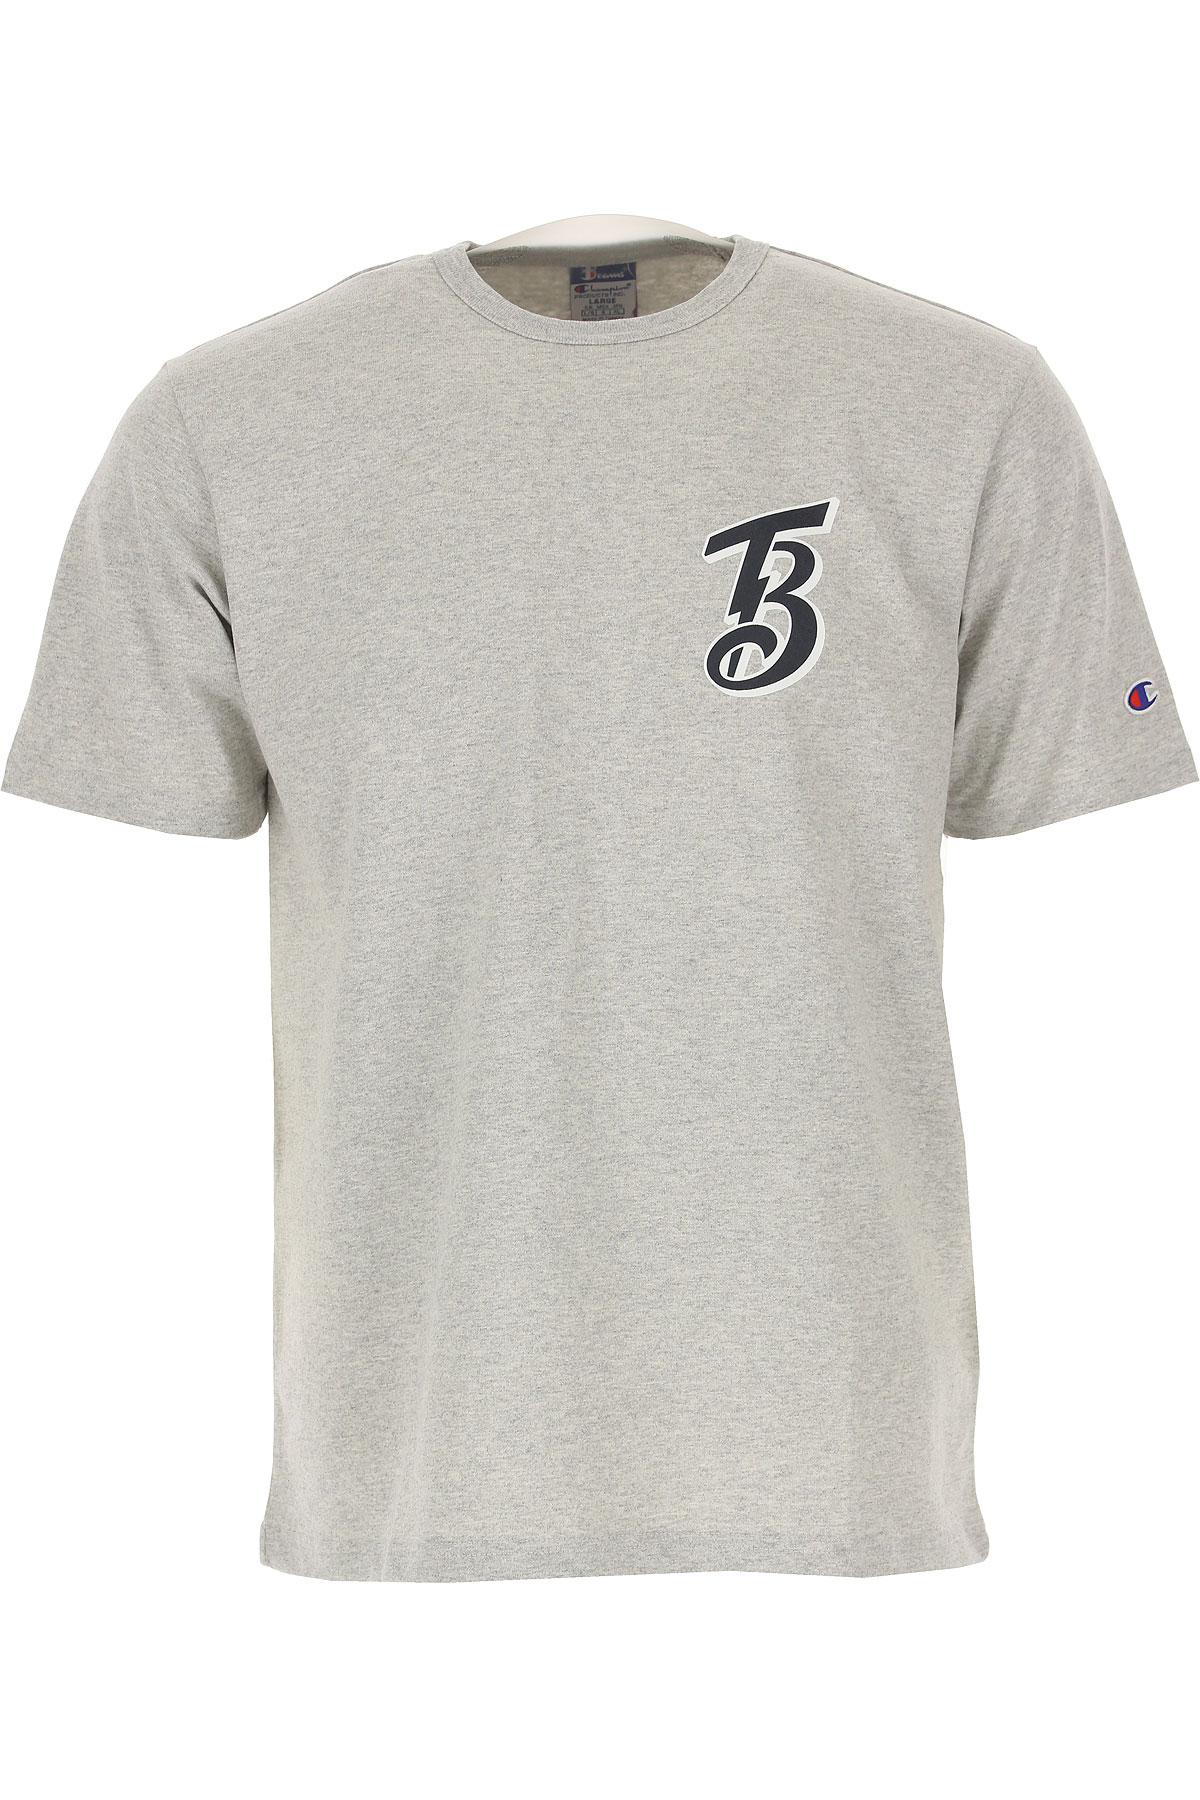 c3587f5e3a4e Lyst - Champion T-shirt For Men On Sale in Gray for Men